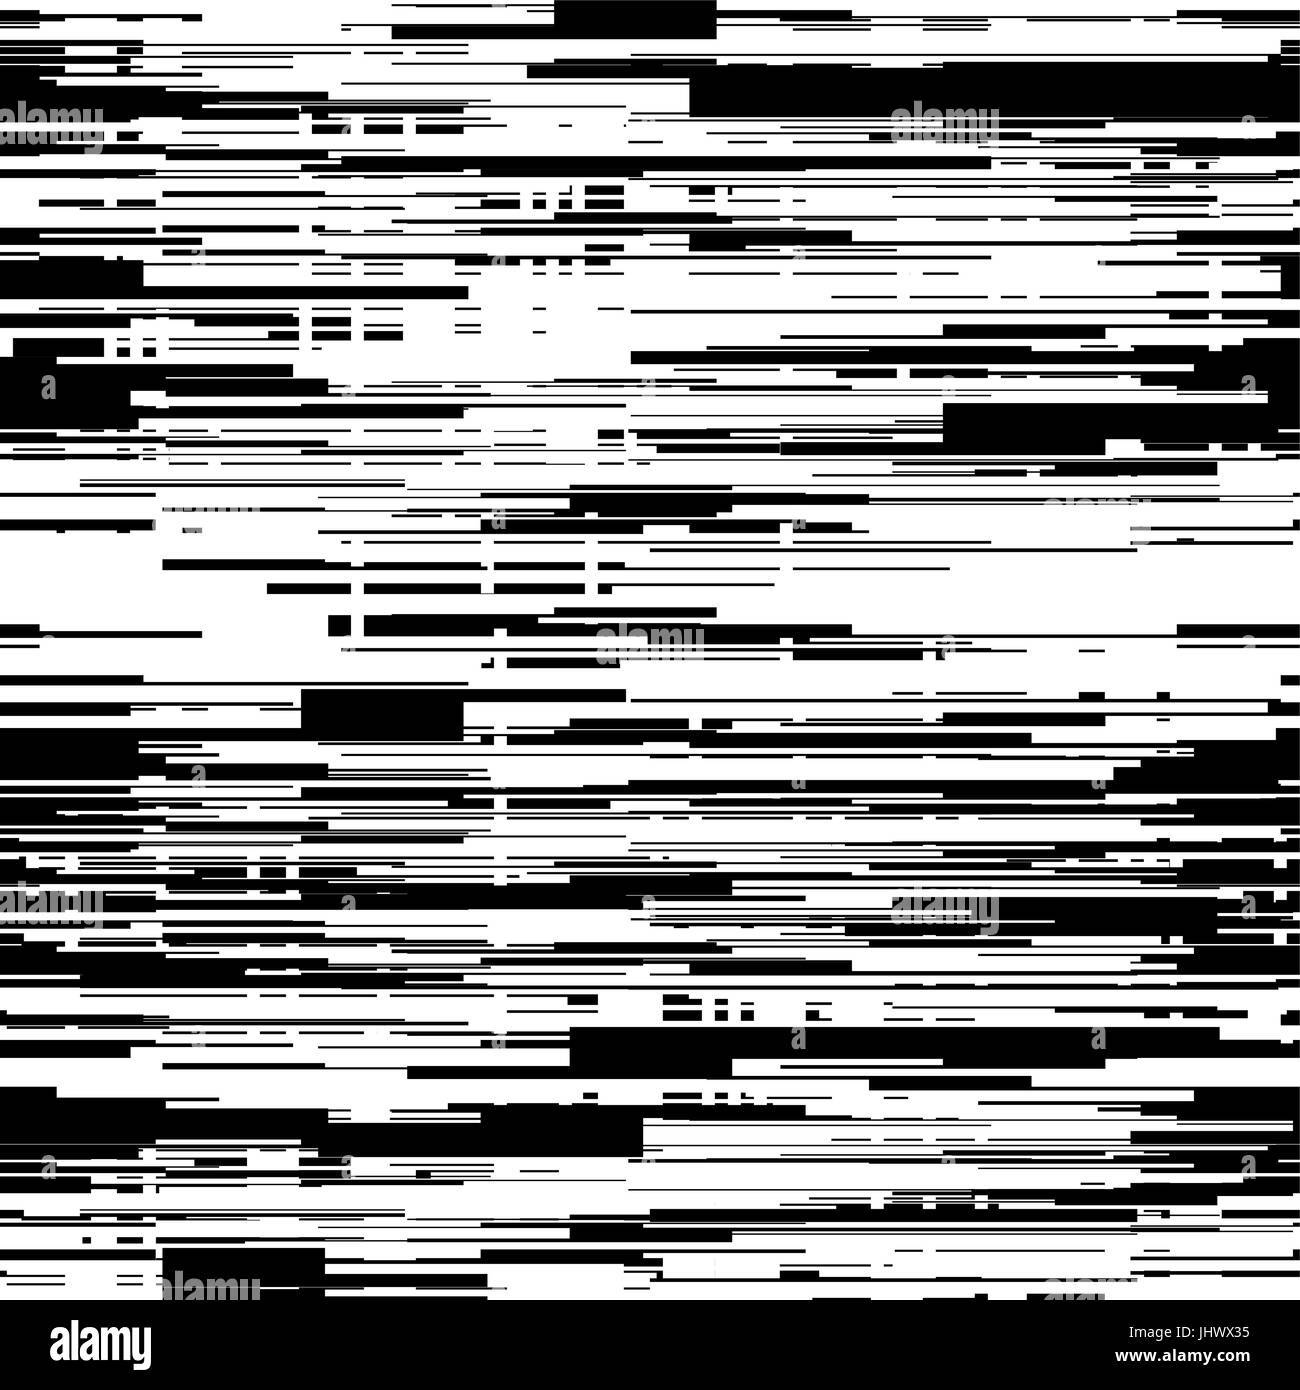 Abstract black and white background with glitch effect distortion seamless texture random horizontal lines vector illustration